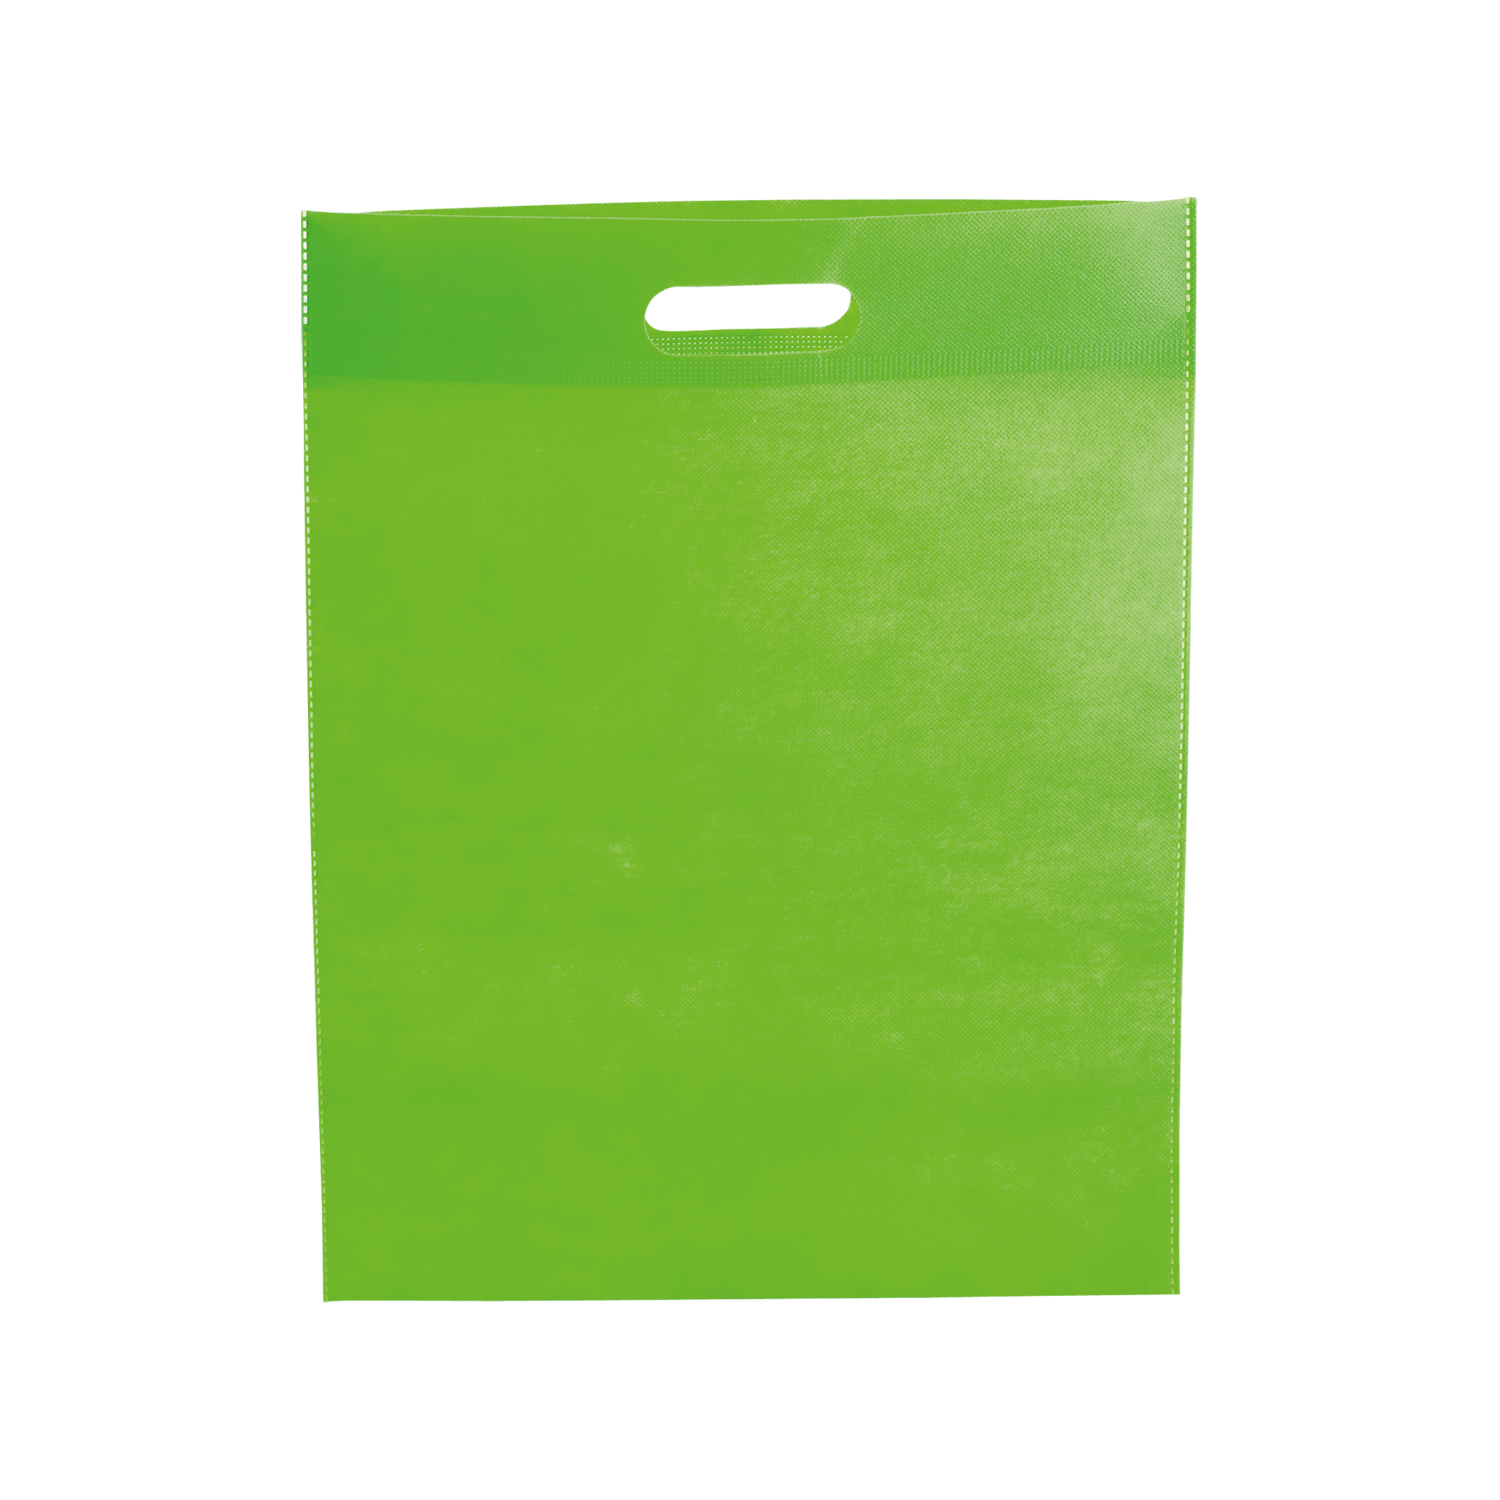 Shopping Bag 022 (Non-woven shopping bag) - hmi17022-09 (Green)